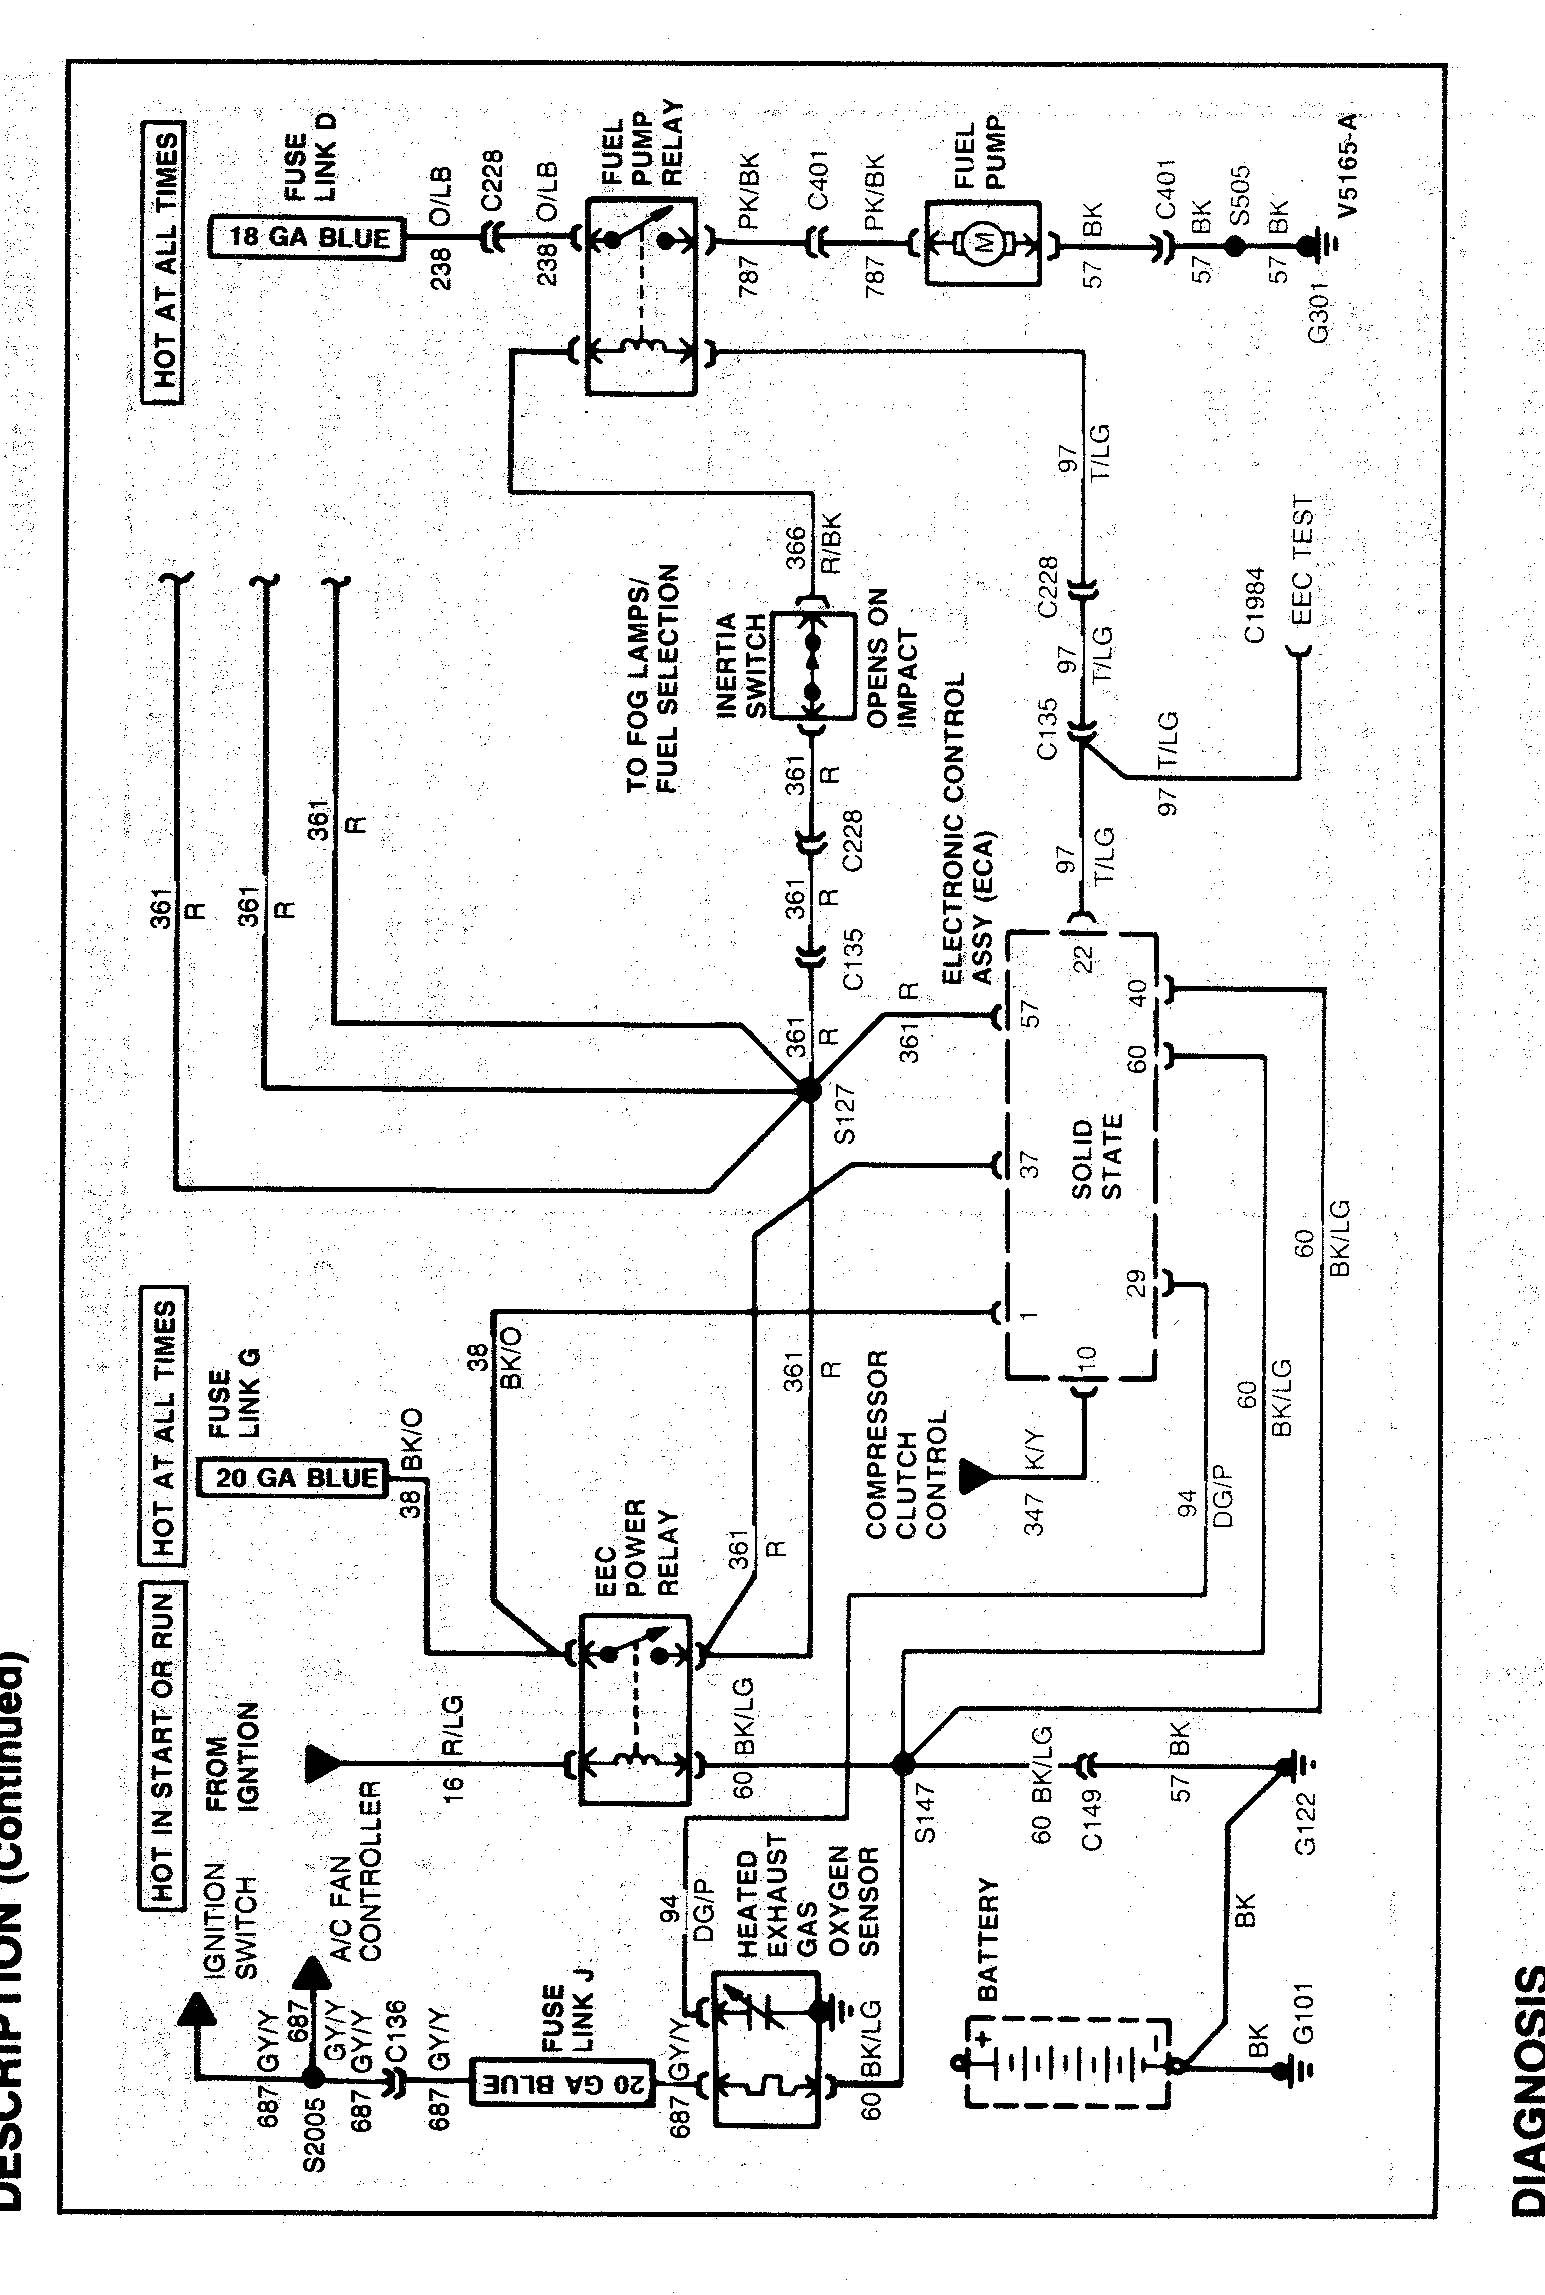 1988 Mustang Fuel Pump Wiring Diagram Data 04 Ford Taurus Not Lossing U2022 1987